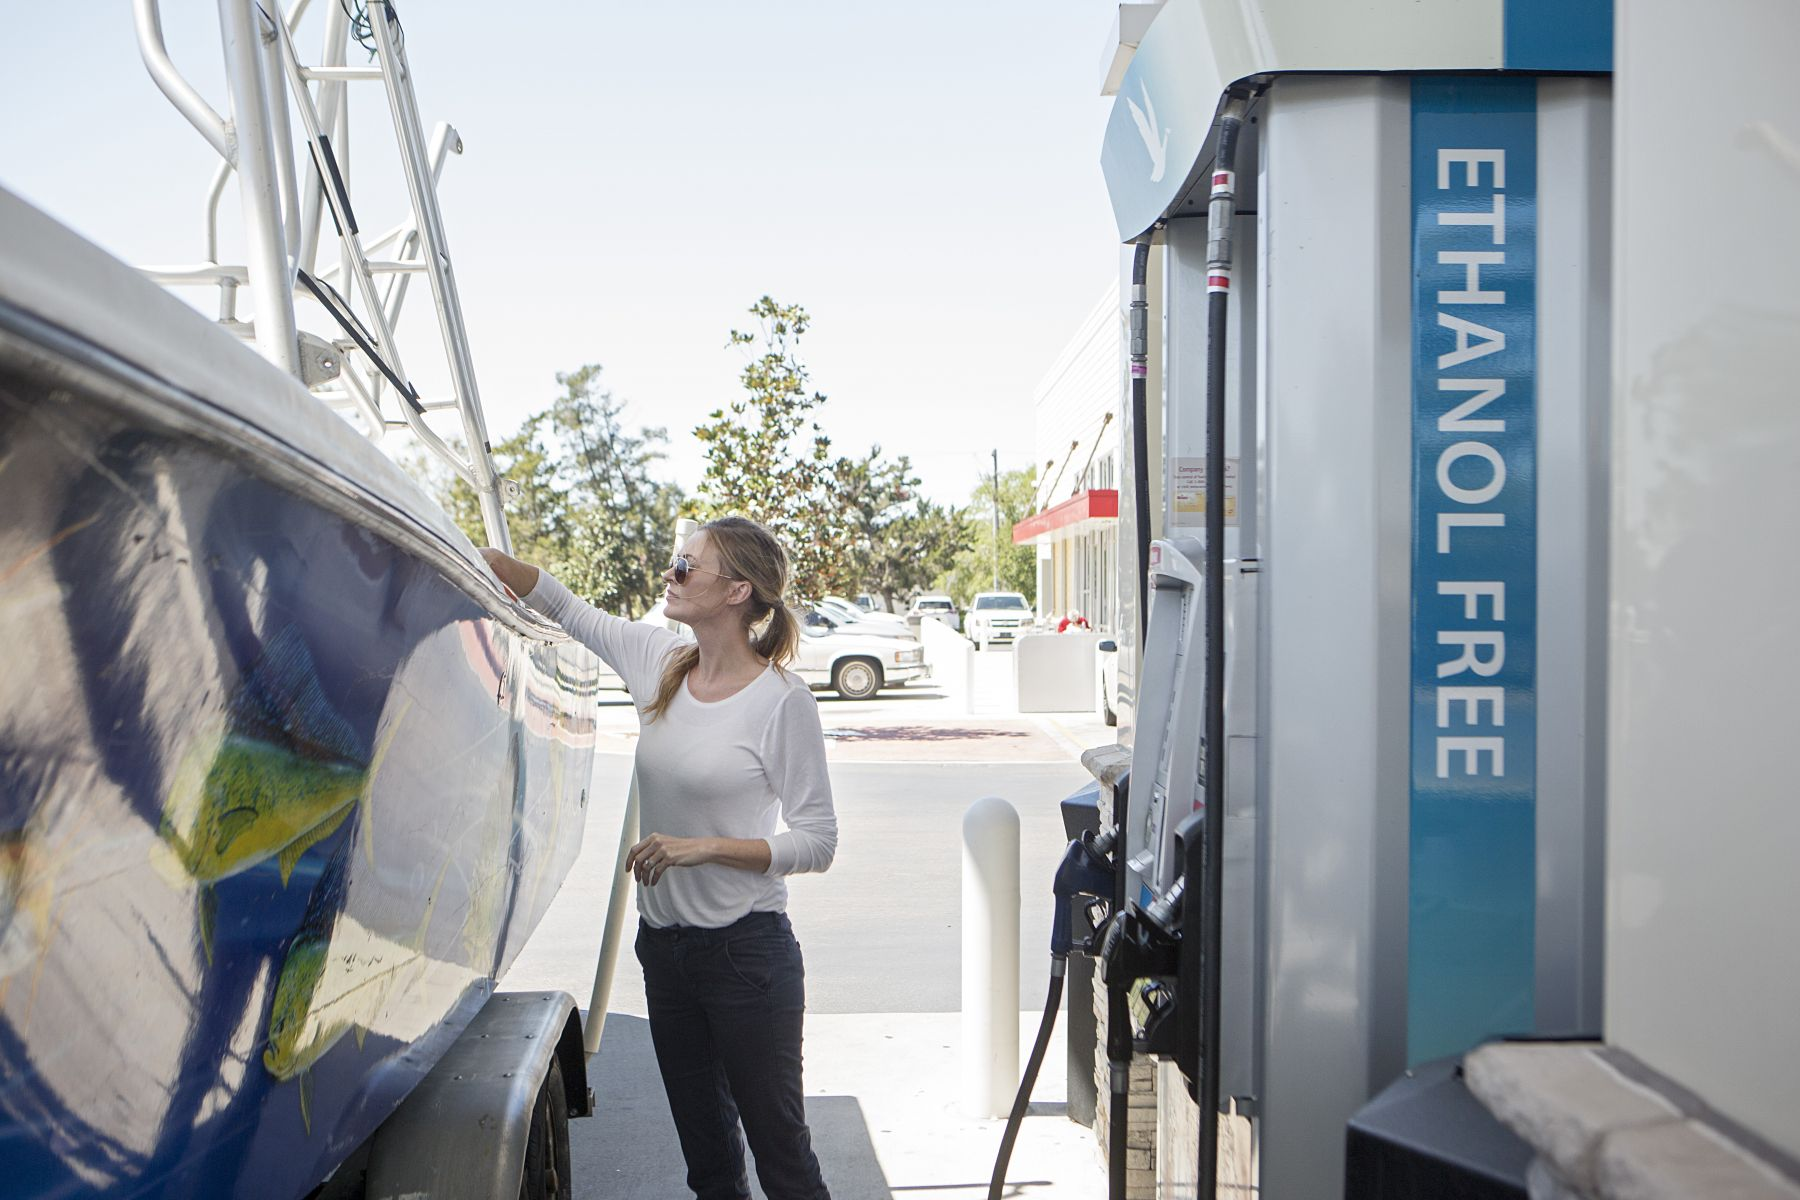 Properly fueling a boat with ethanol free, unleaded gasoline at a land pump.